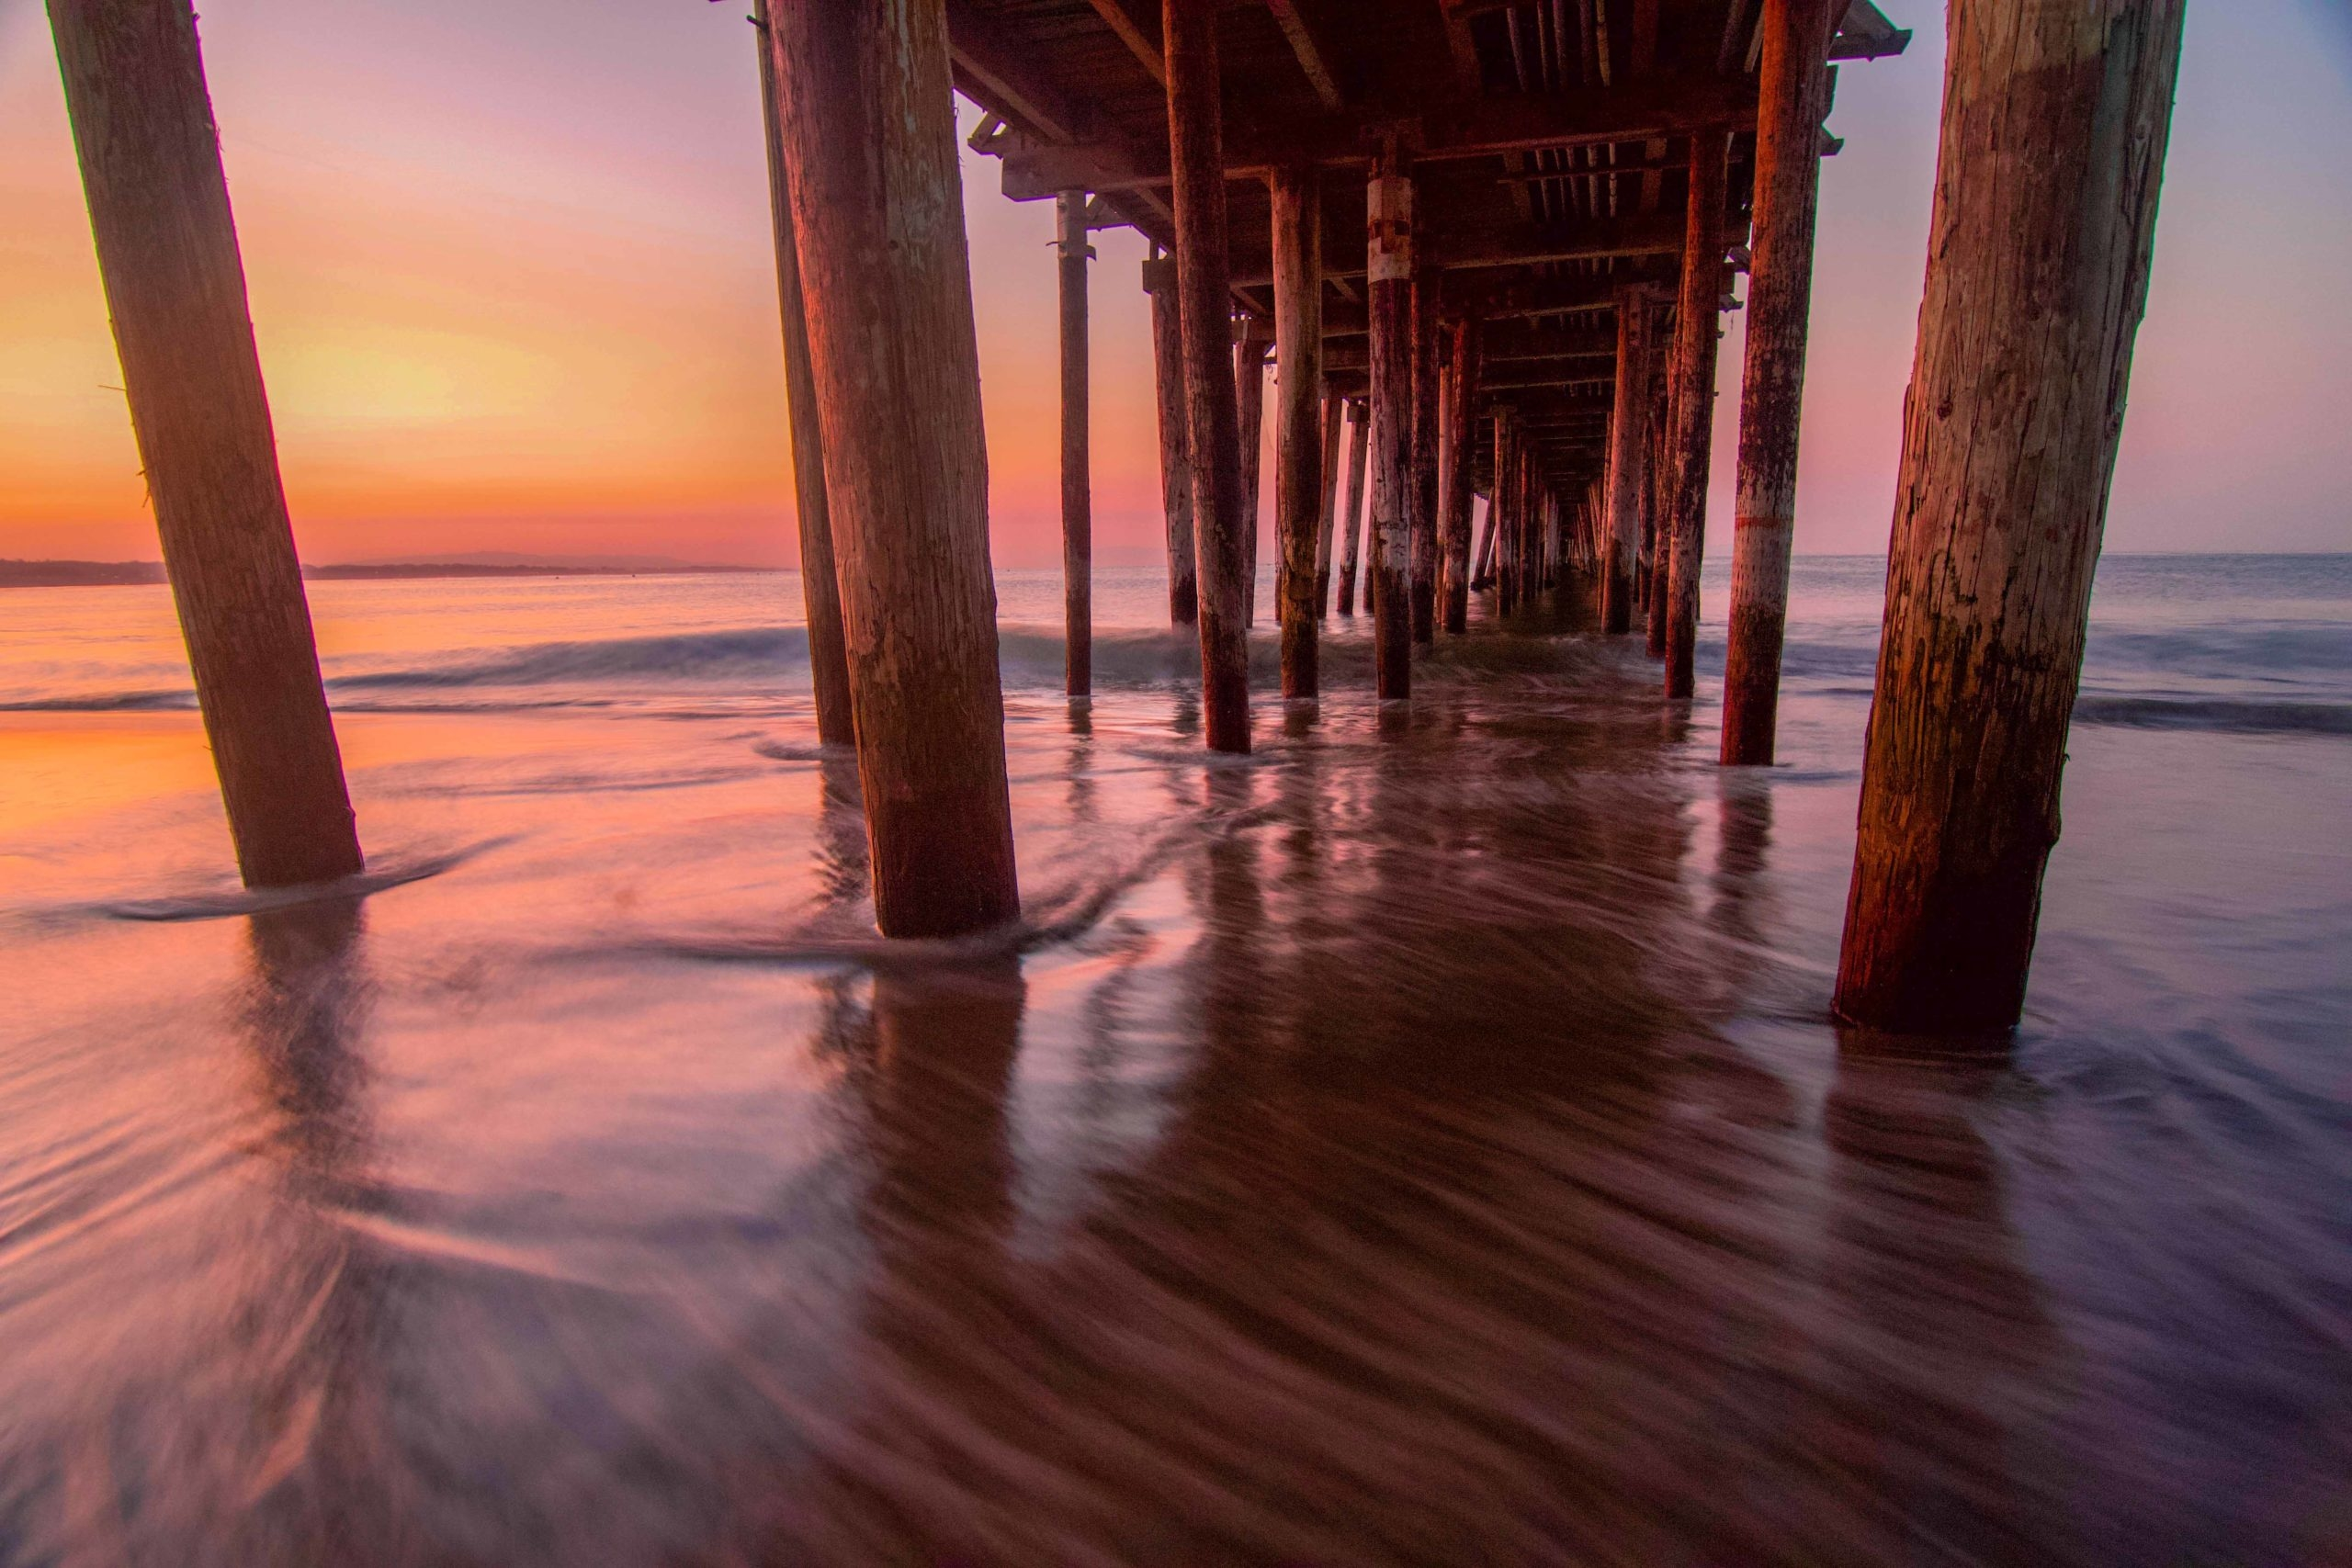 The pillars of the pier extend out into the ocean on both sides, with soft waves under a purple and orange sky.